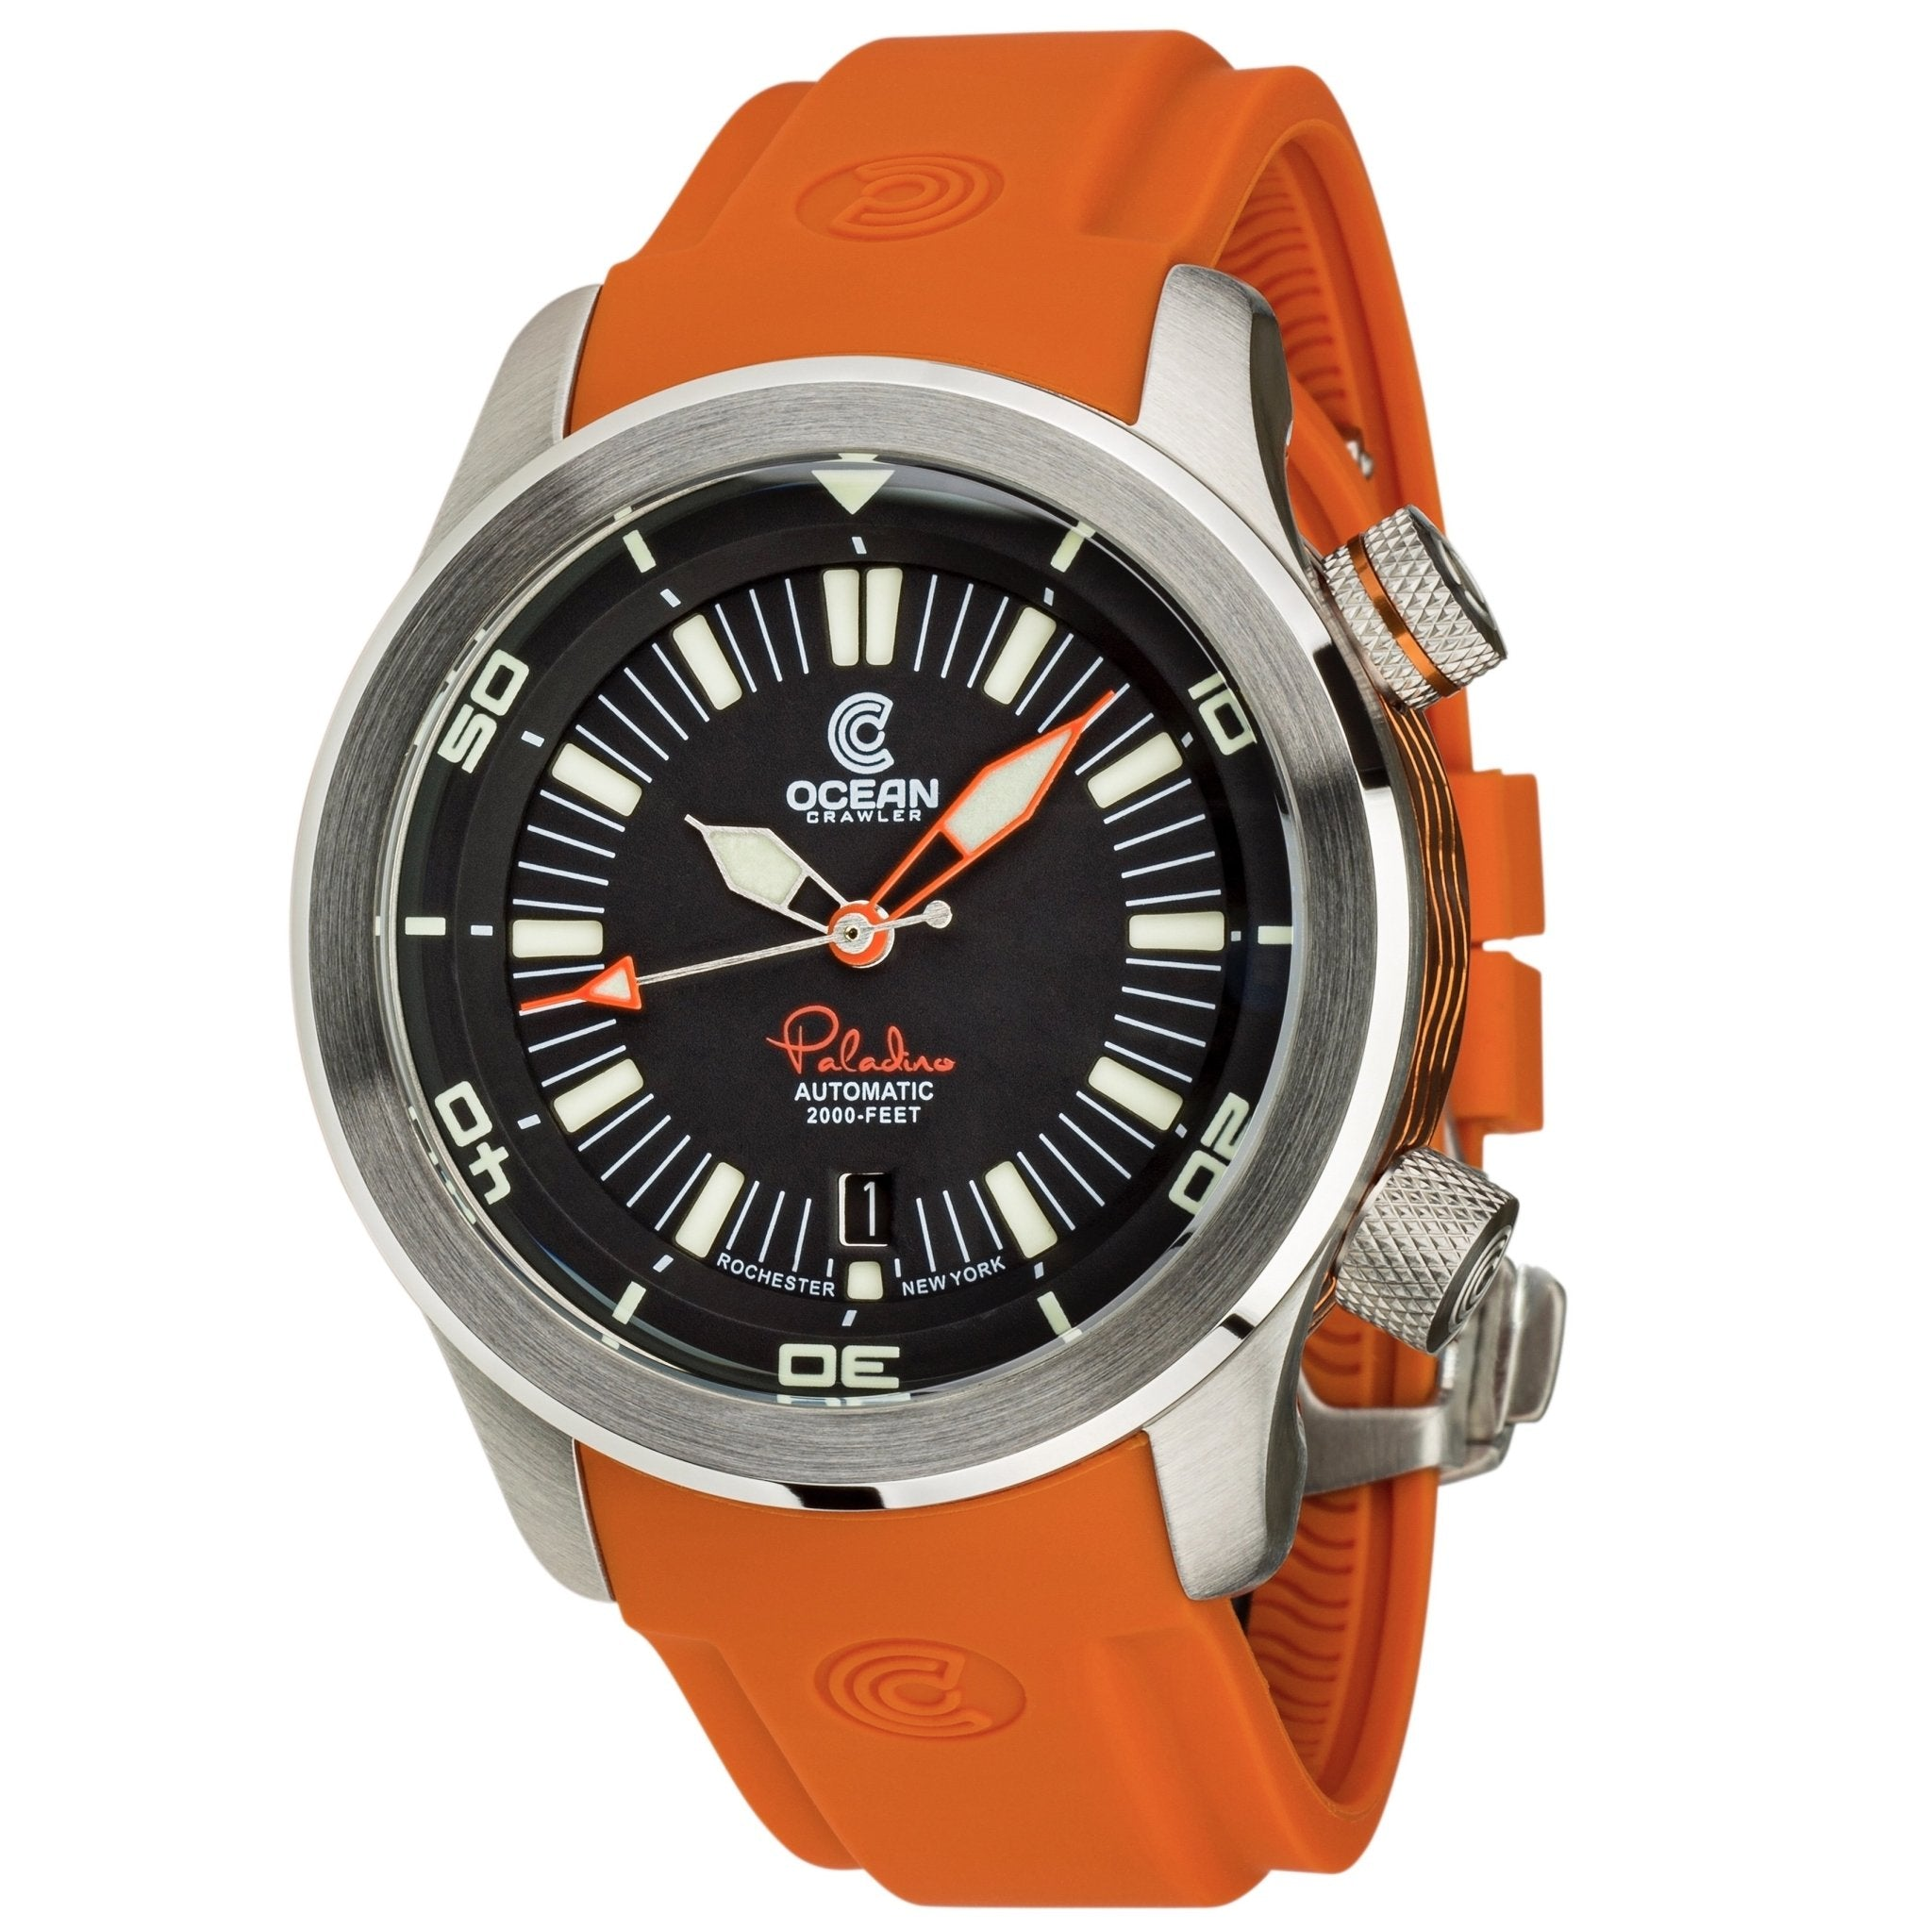 Ocean Crawler Paladino WaveMaker - Black - Ocean Crawler Watch Co.